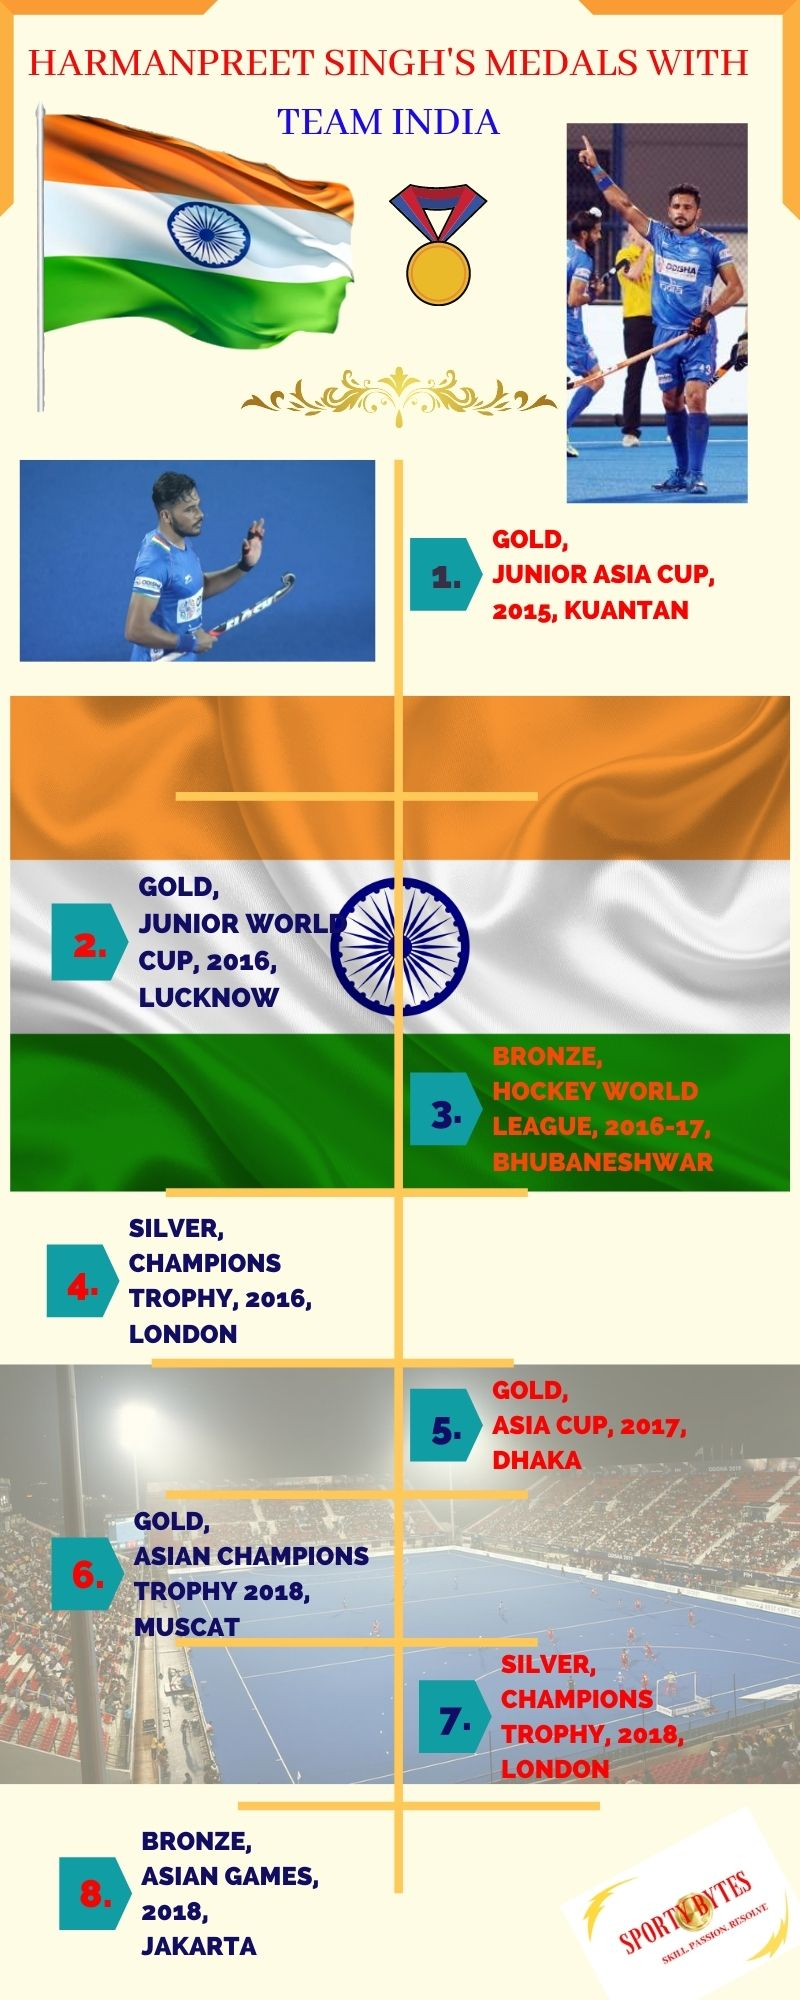 infographic-of-team-medals-of-indian-hockey-layer-harmanpreet-singh